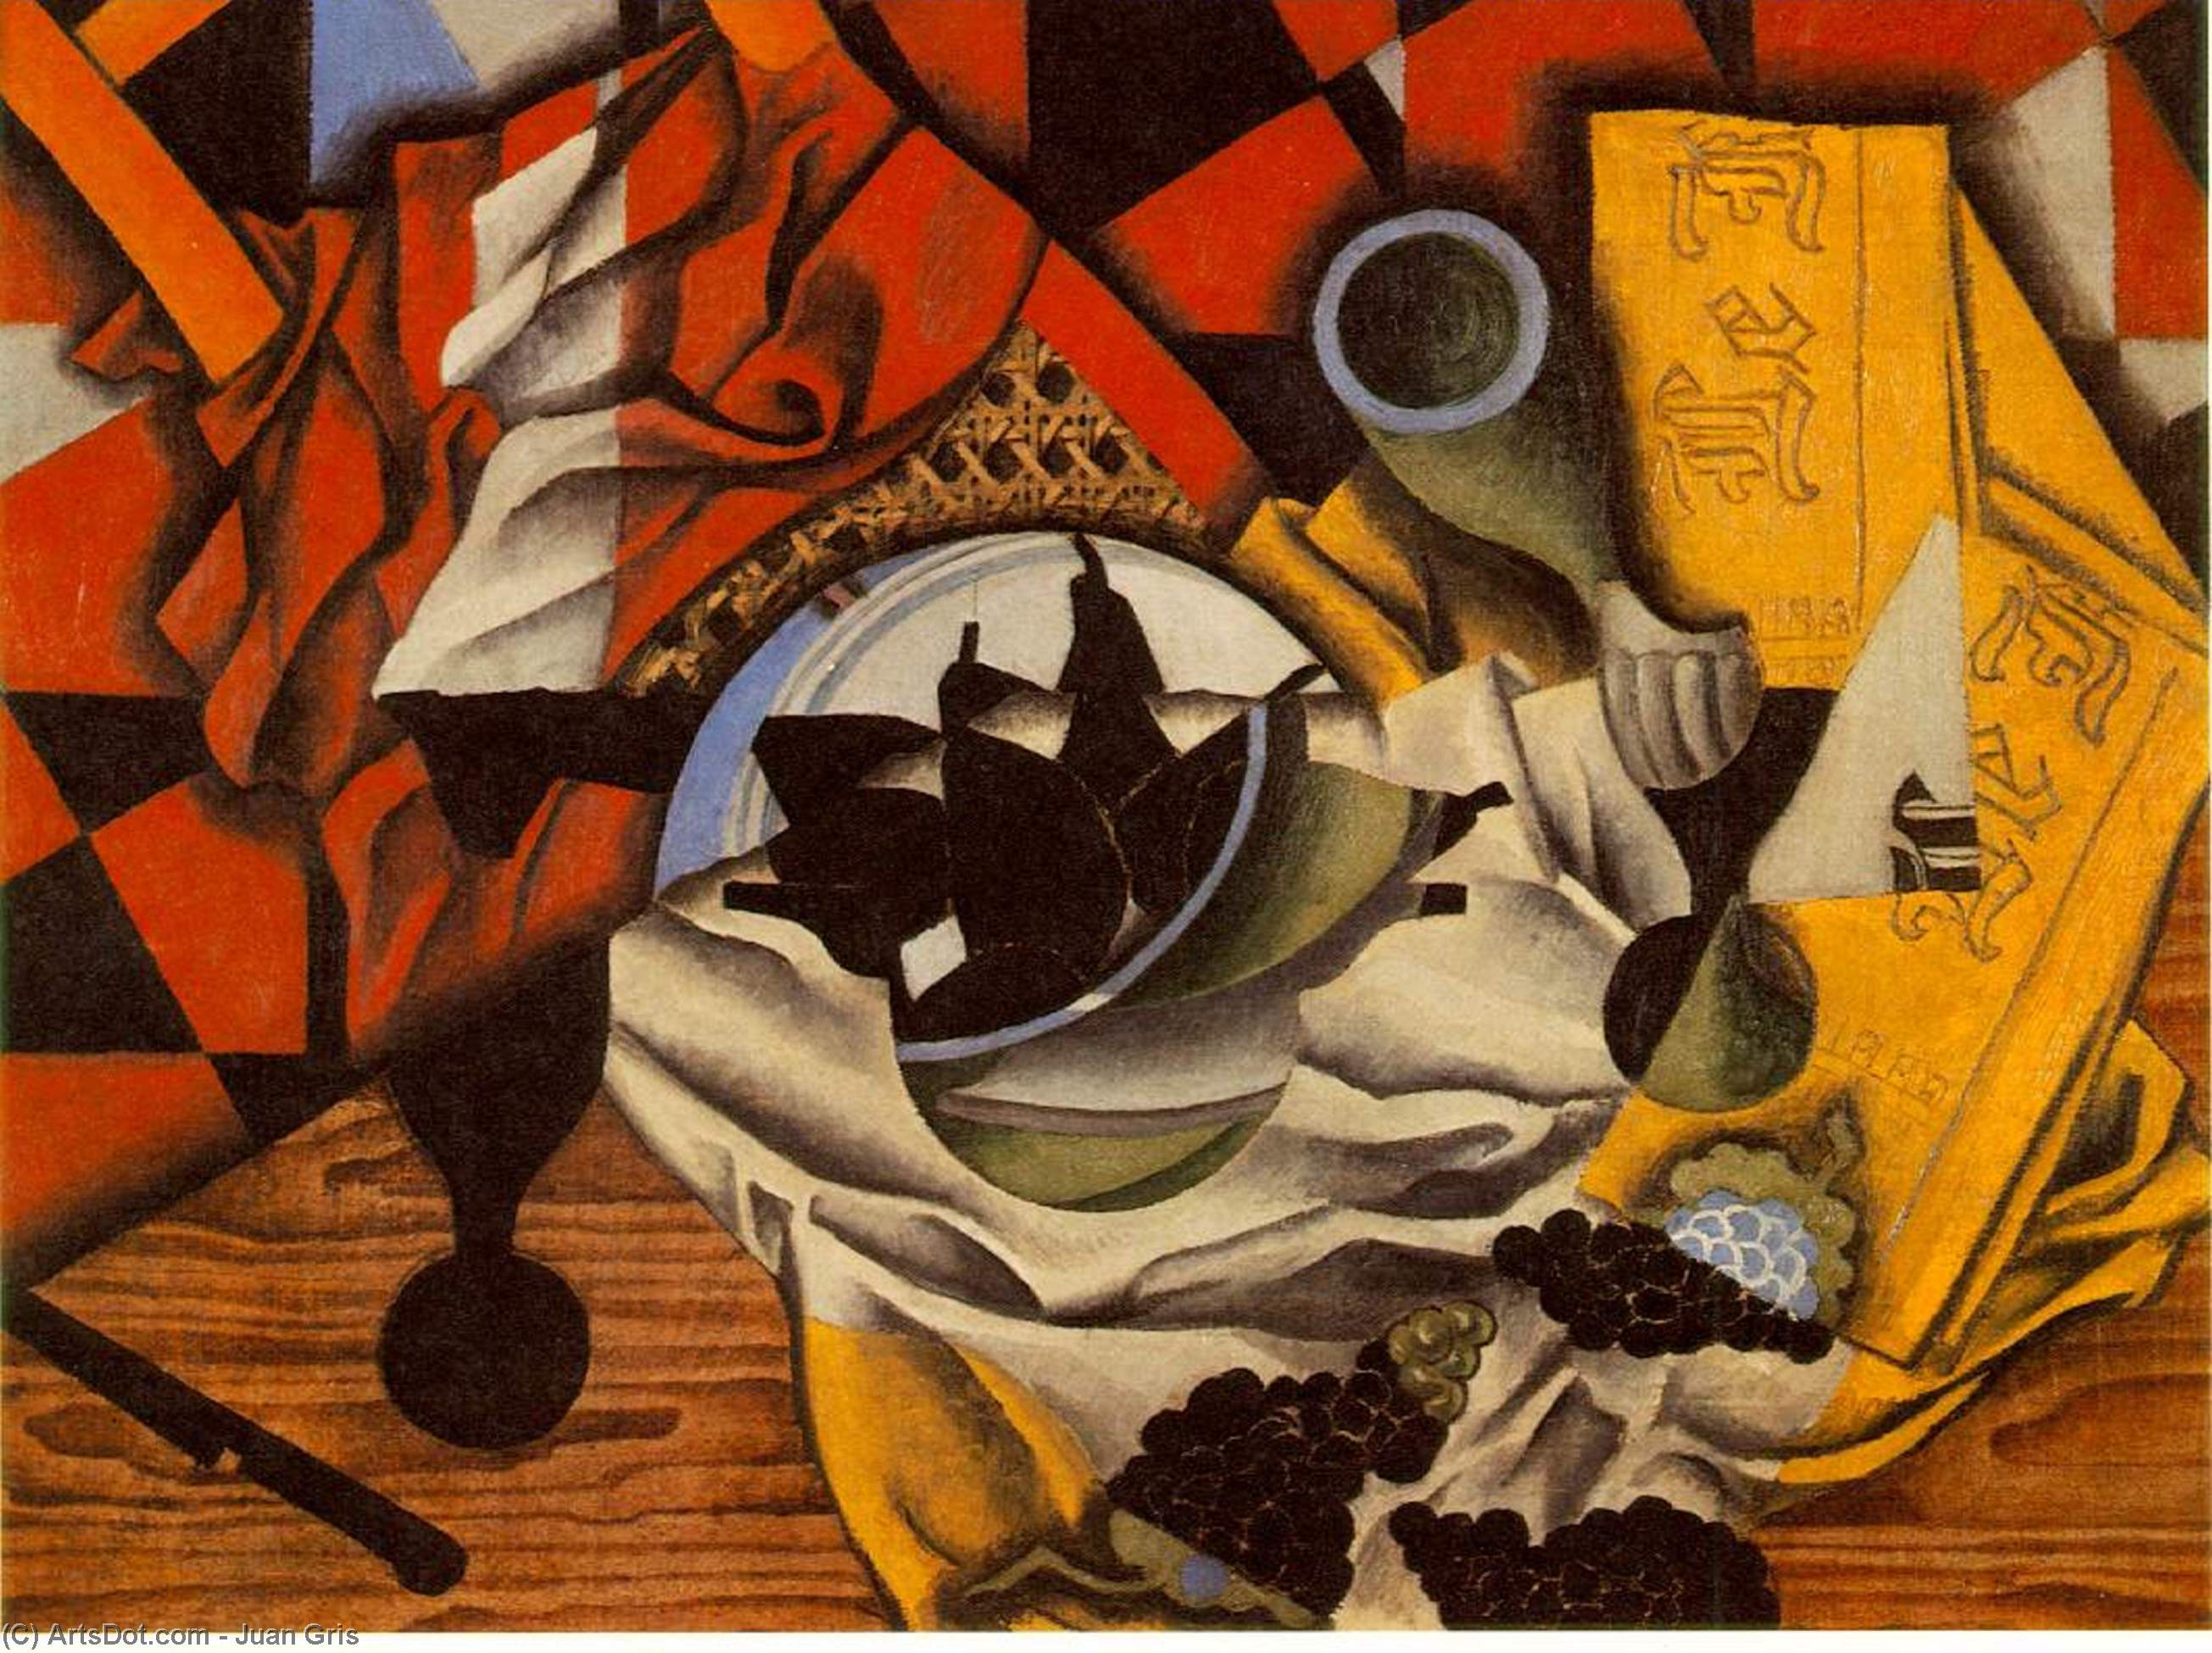 Pears and grapes on a table - Juan Gris